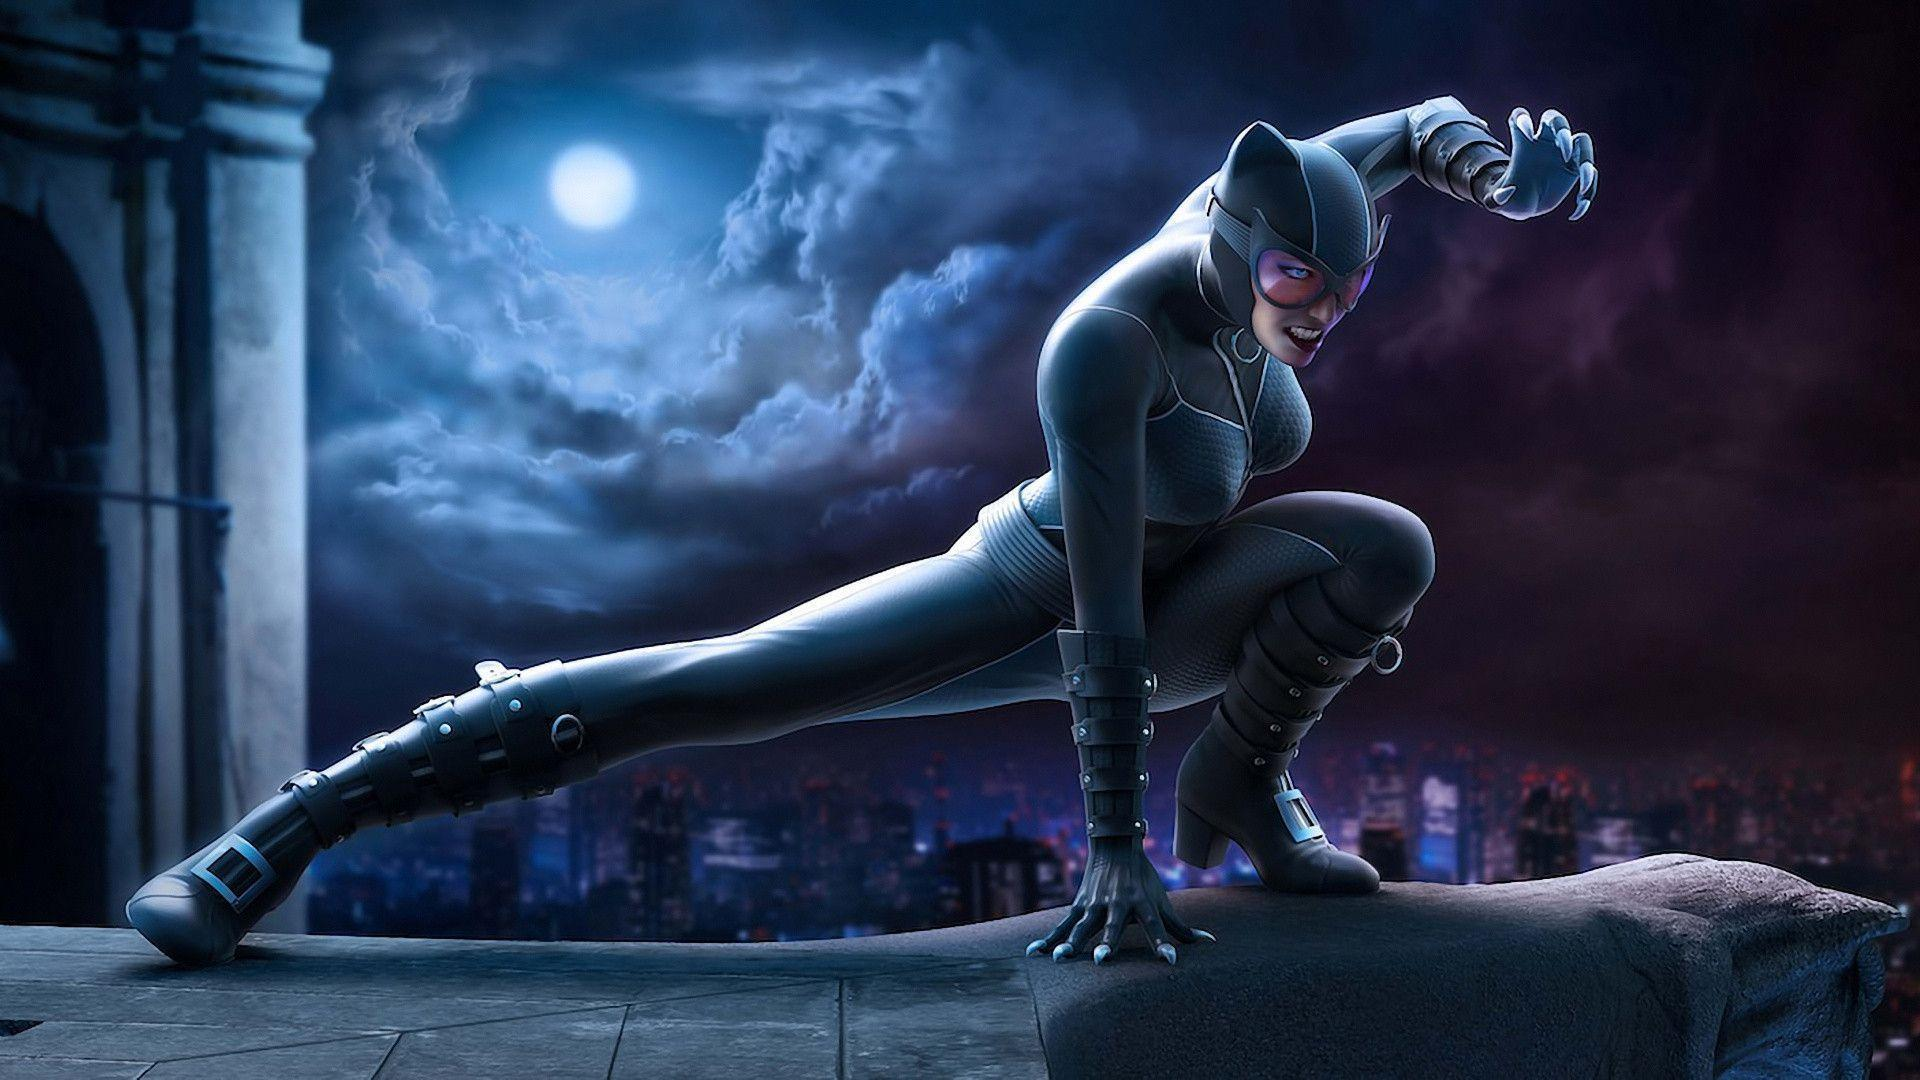 http://www.linomasciulli/cat_woman.html Computer Wallpapers